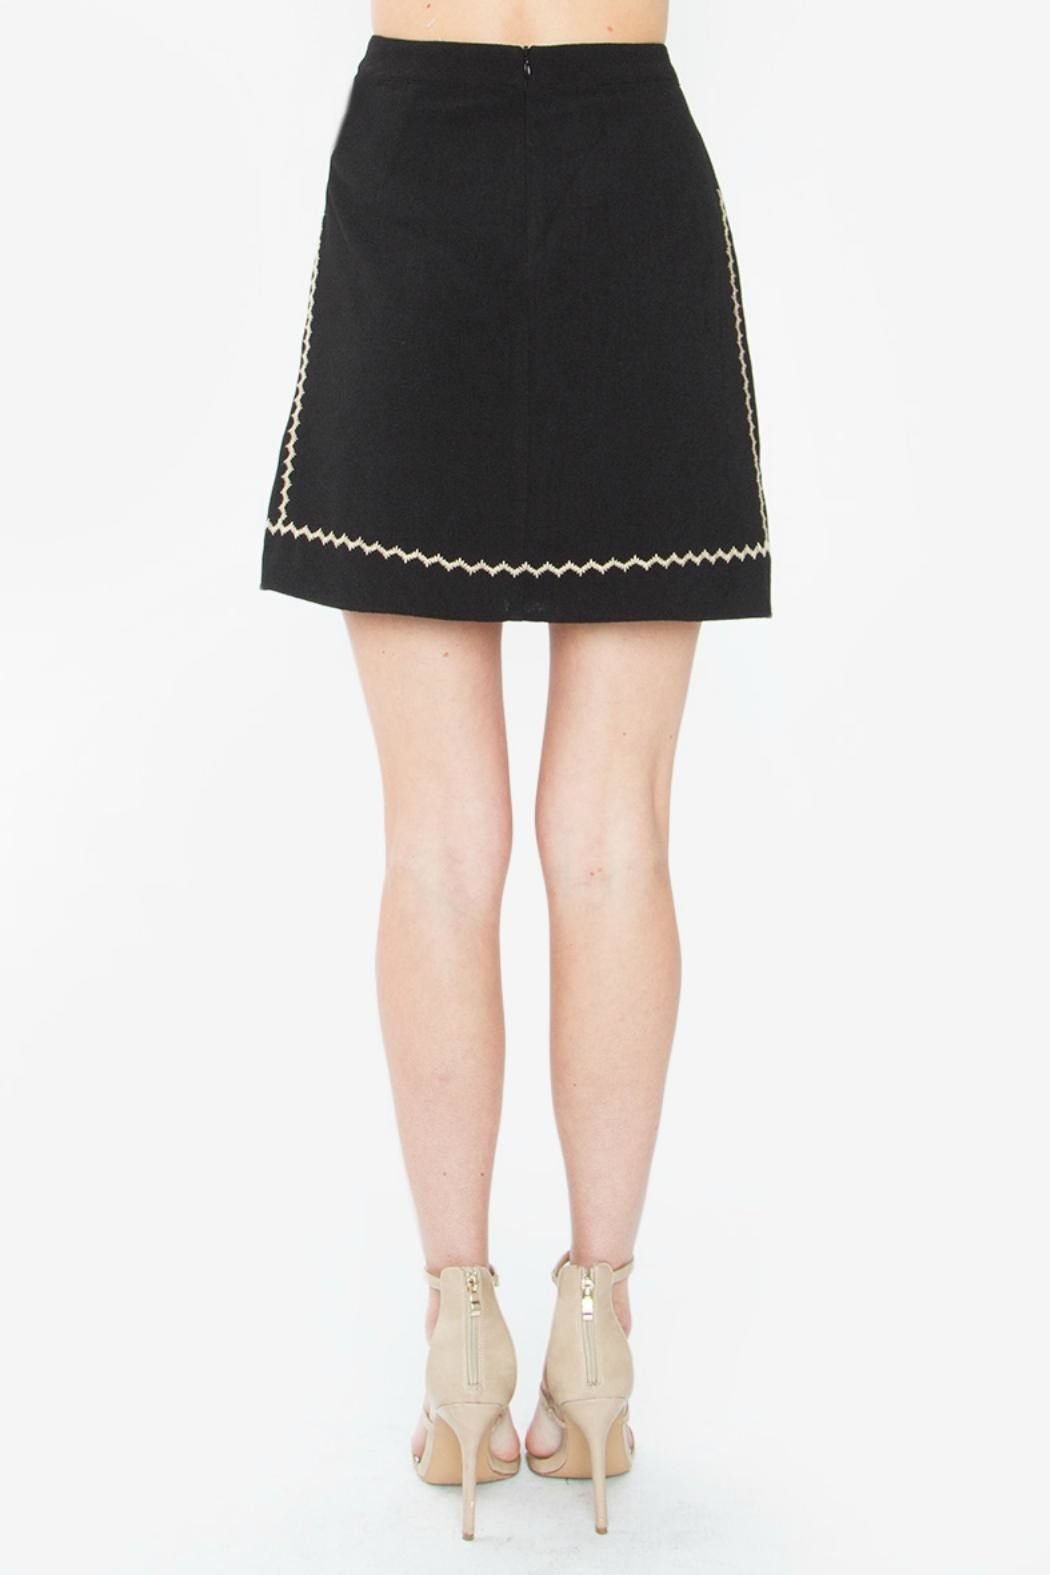 Sugar Lips Black Embroidered Skirt - Front Full Image